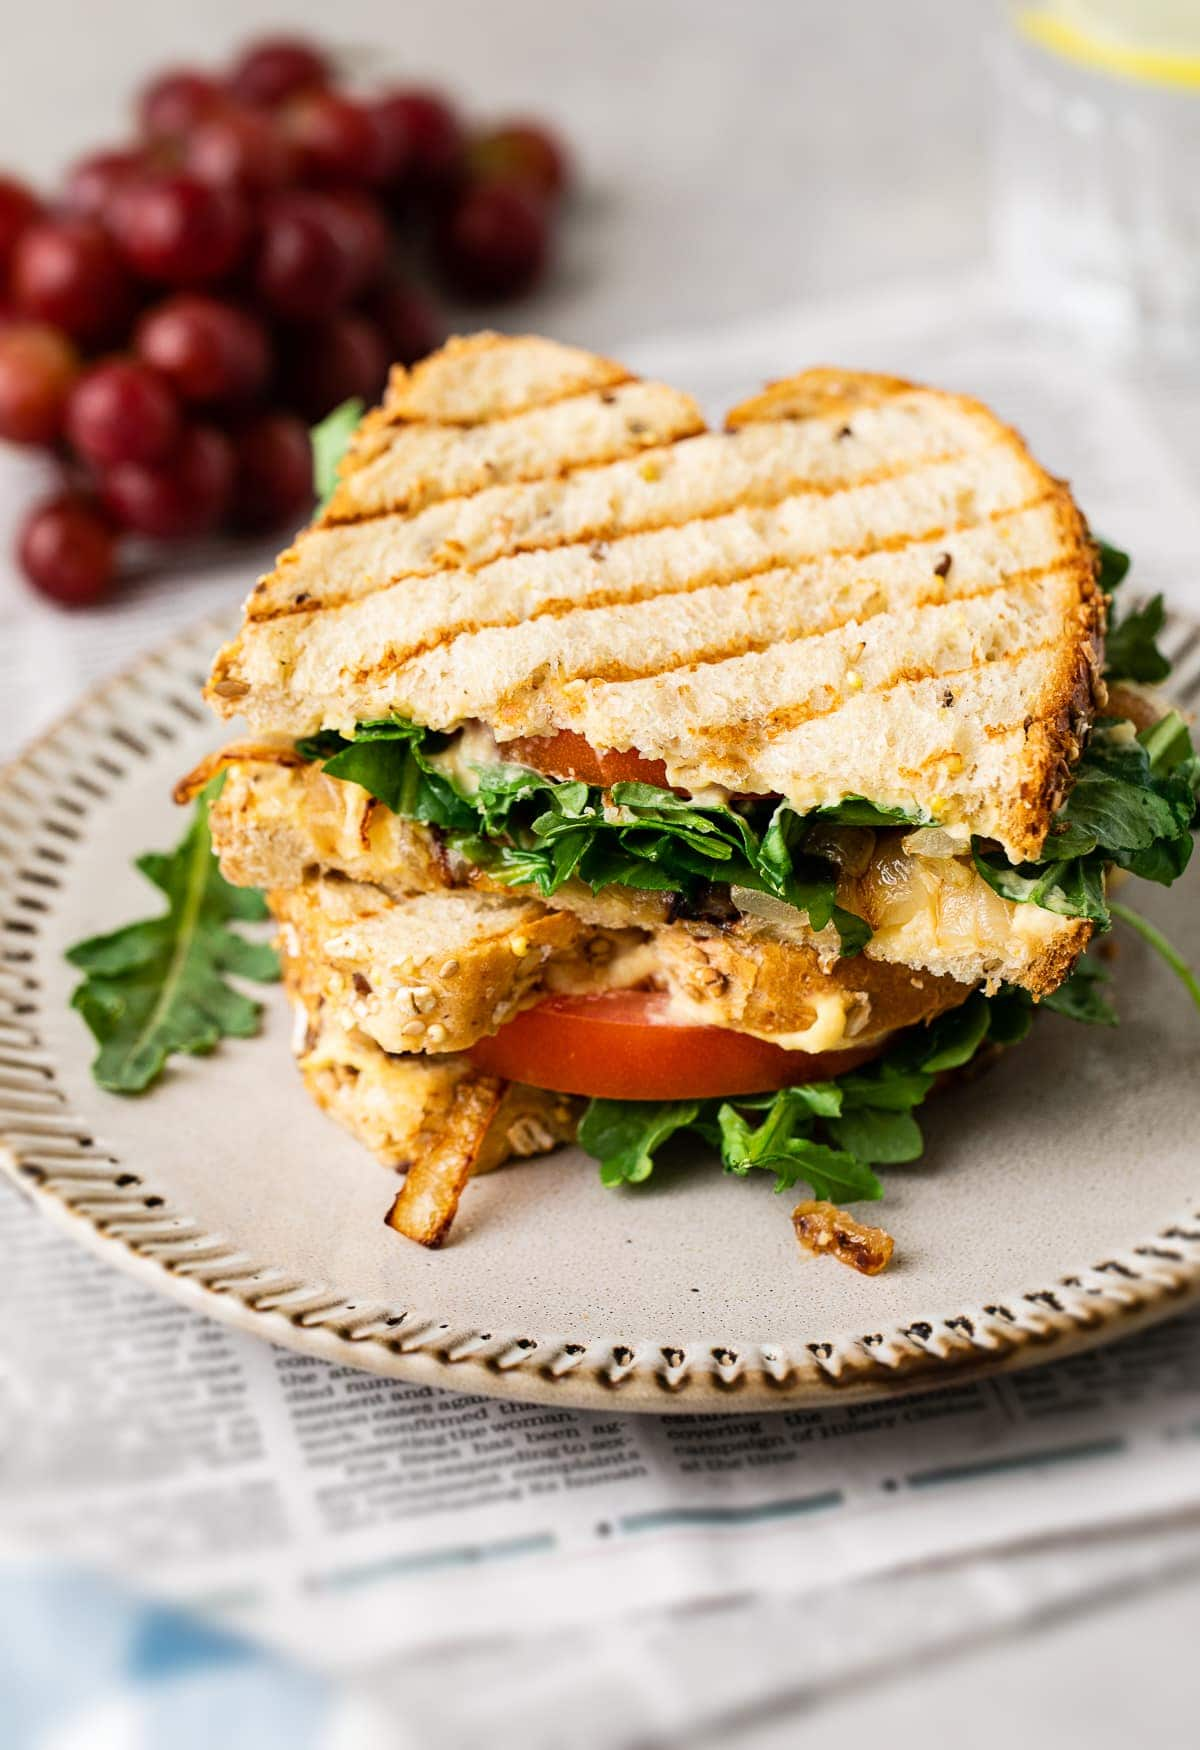 side angle view of two halves of grilled hummus sandwich stacked on a small plate.